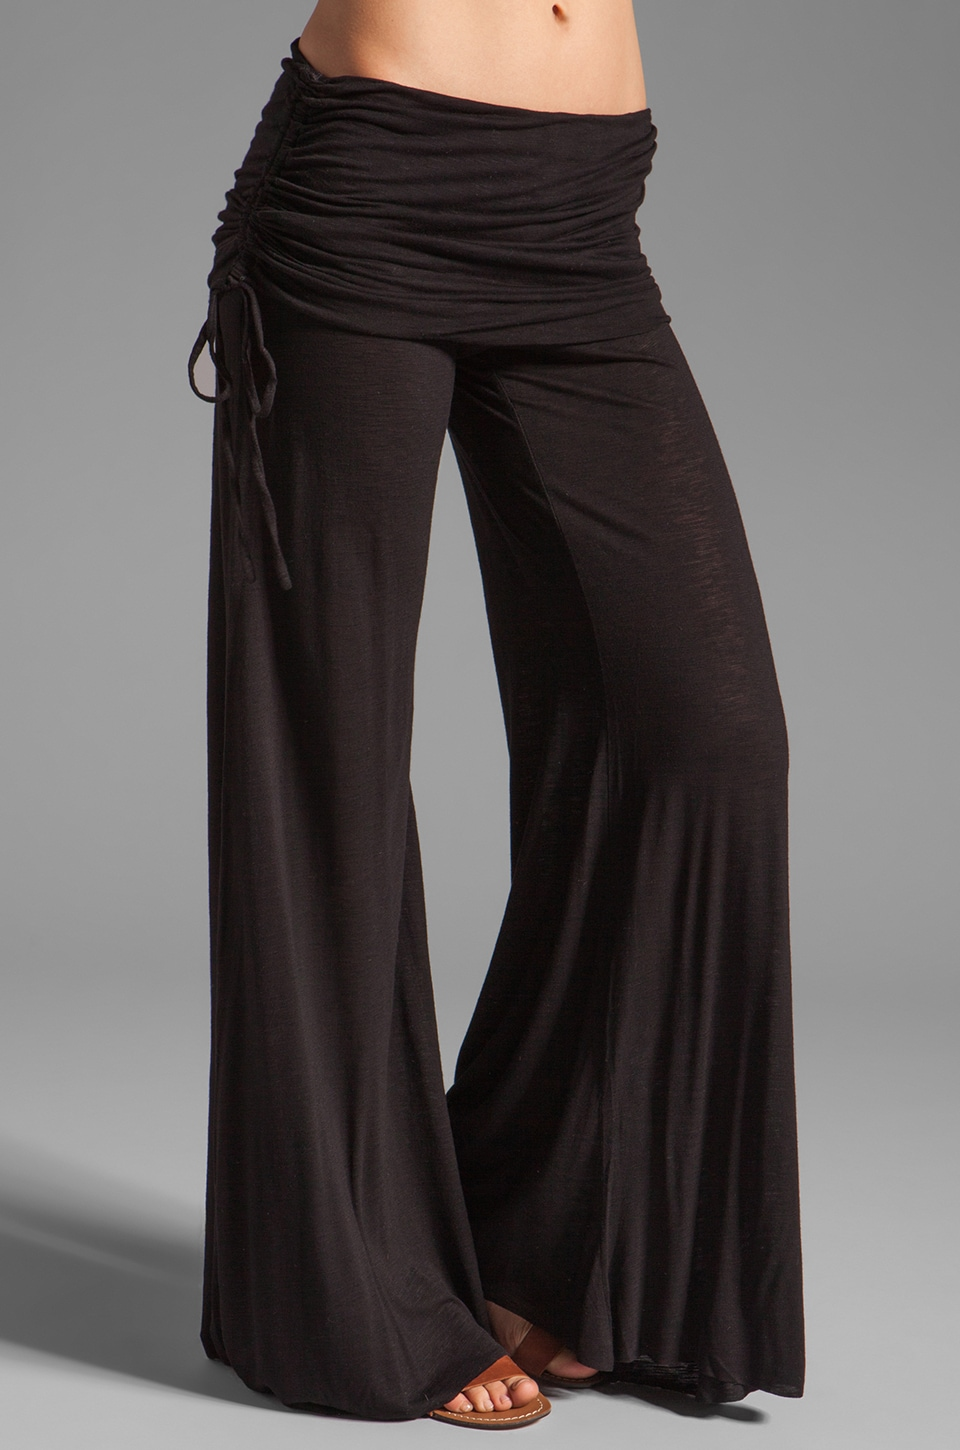 Young, Fabulous & Broke Sierra Pant in Black